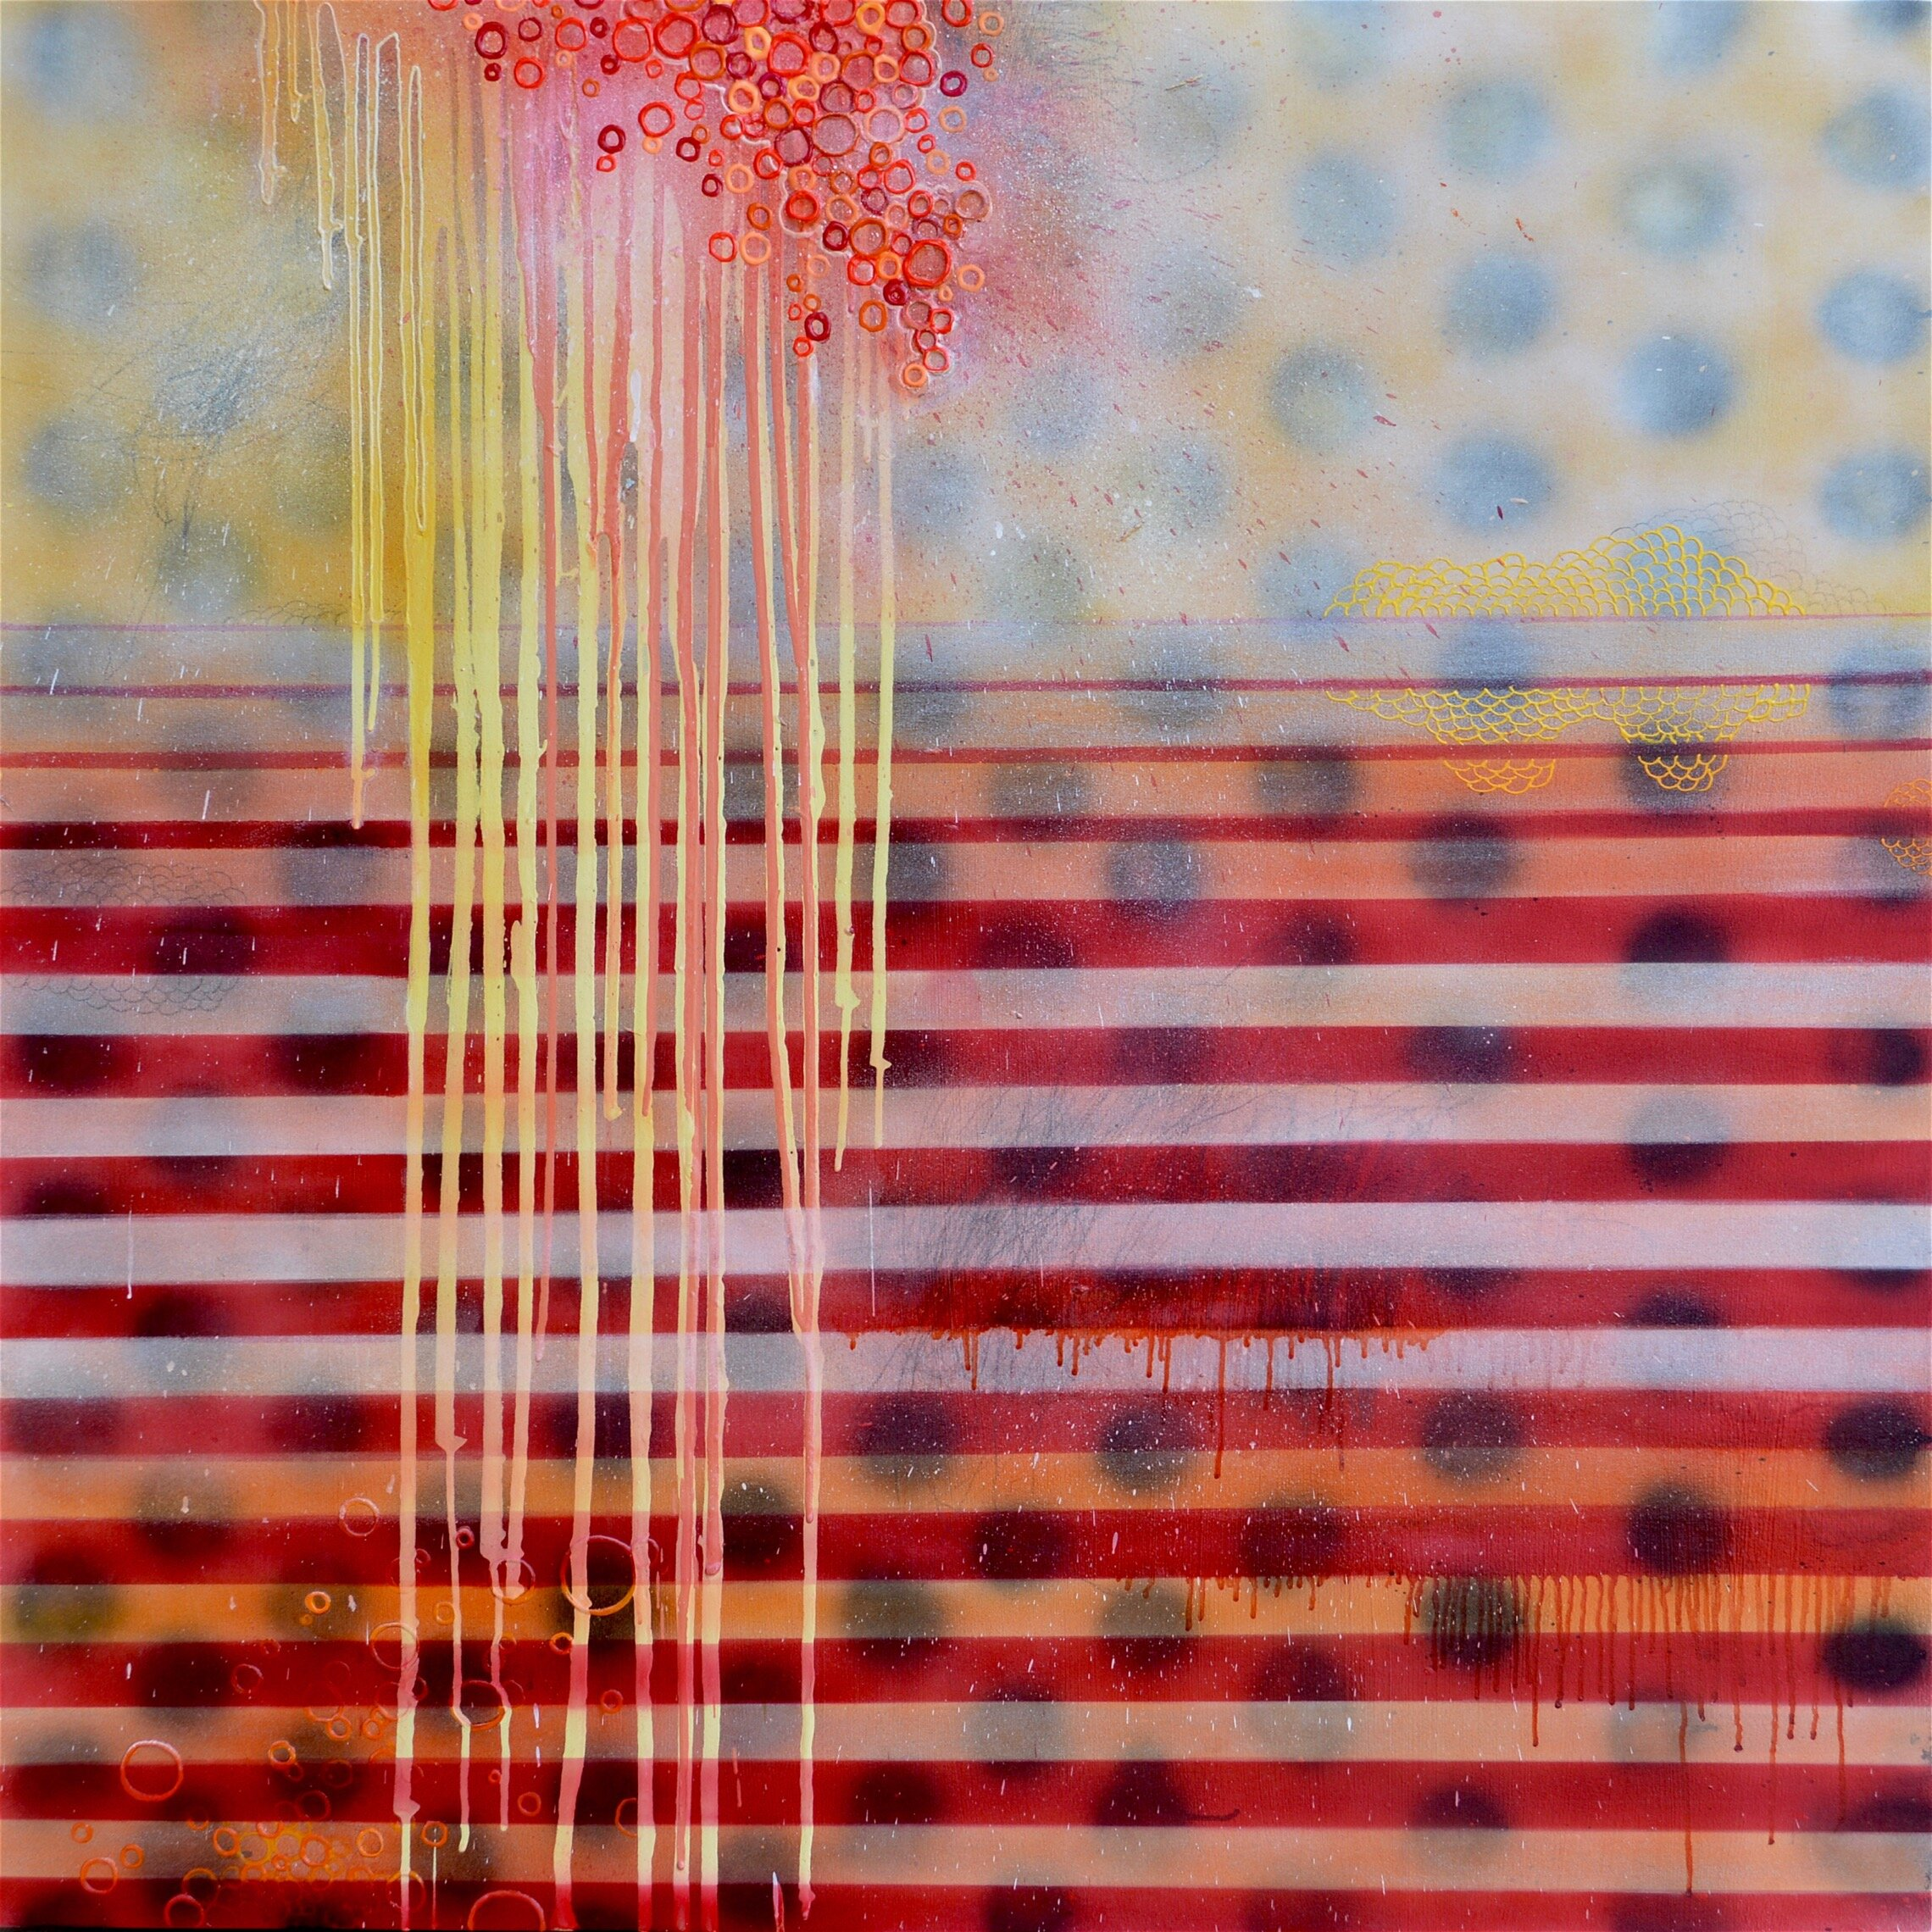 Constitutional Transformation, Acrylic paint, polymers, spray paint, 3-D puff paint, phosphorescent paint, glitter, nail polish, paper, and graphite on canvas, 48 x 48 inches